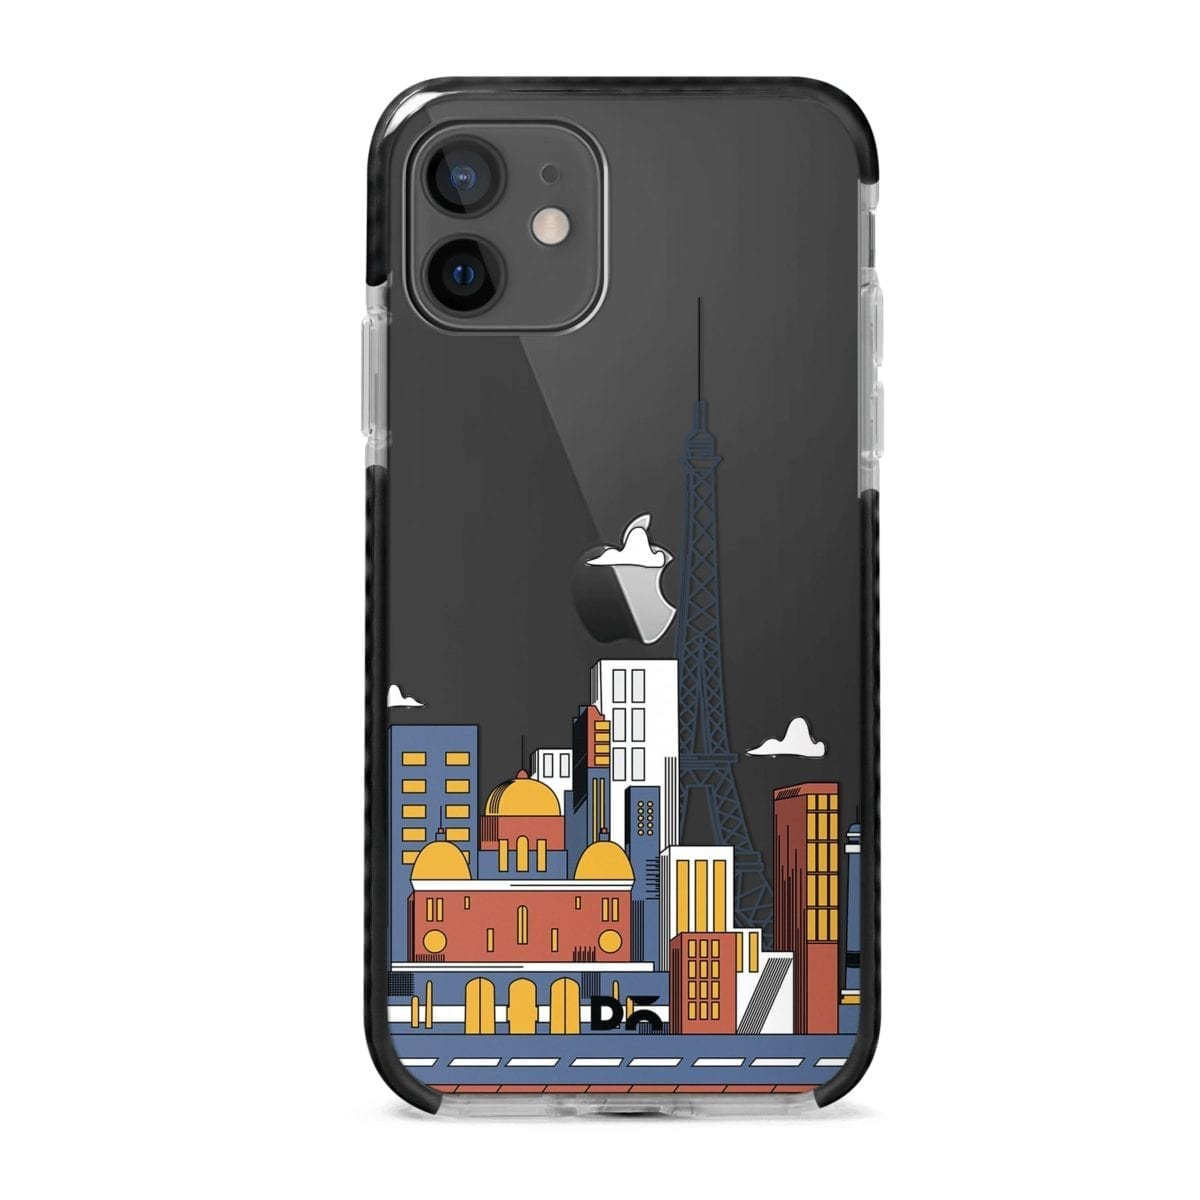 Paris Skyline Clear Stride Case Cover for Apple iPhone 12 Mini and Apple iPhone 12 with great design and shock proof | Klippik | Online Shopping | Kuwait UAE Saudi